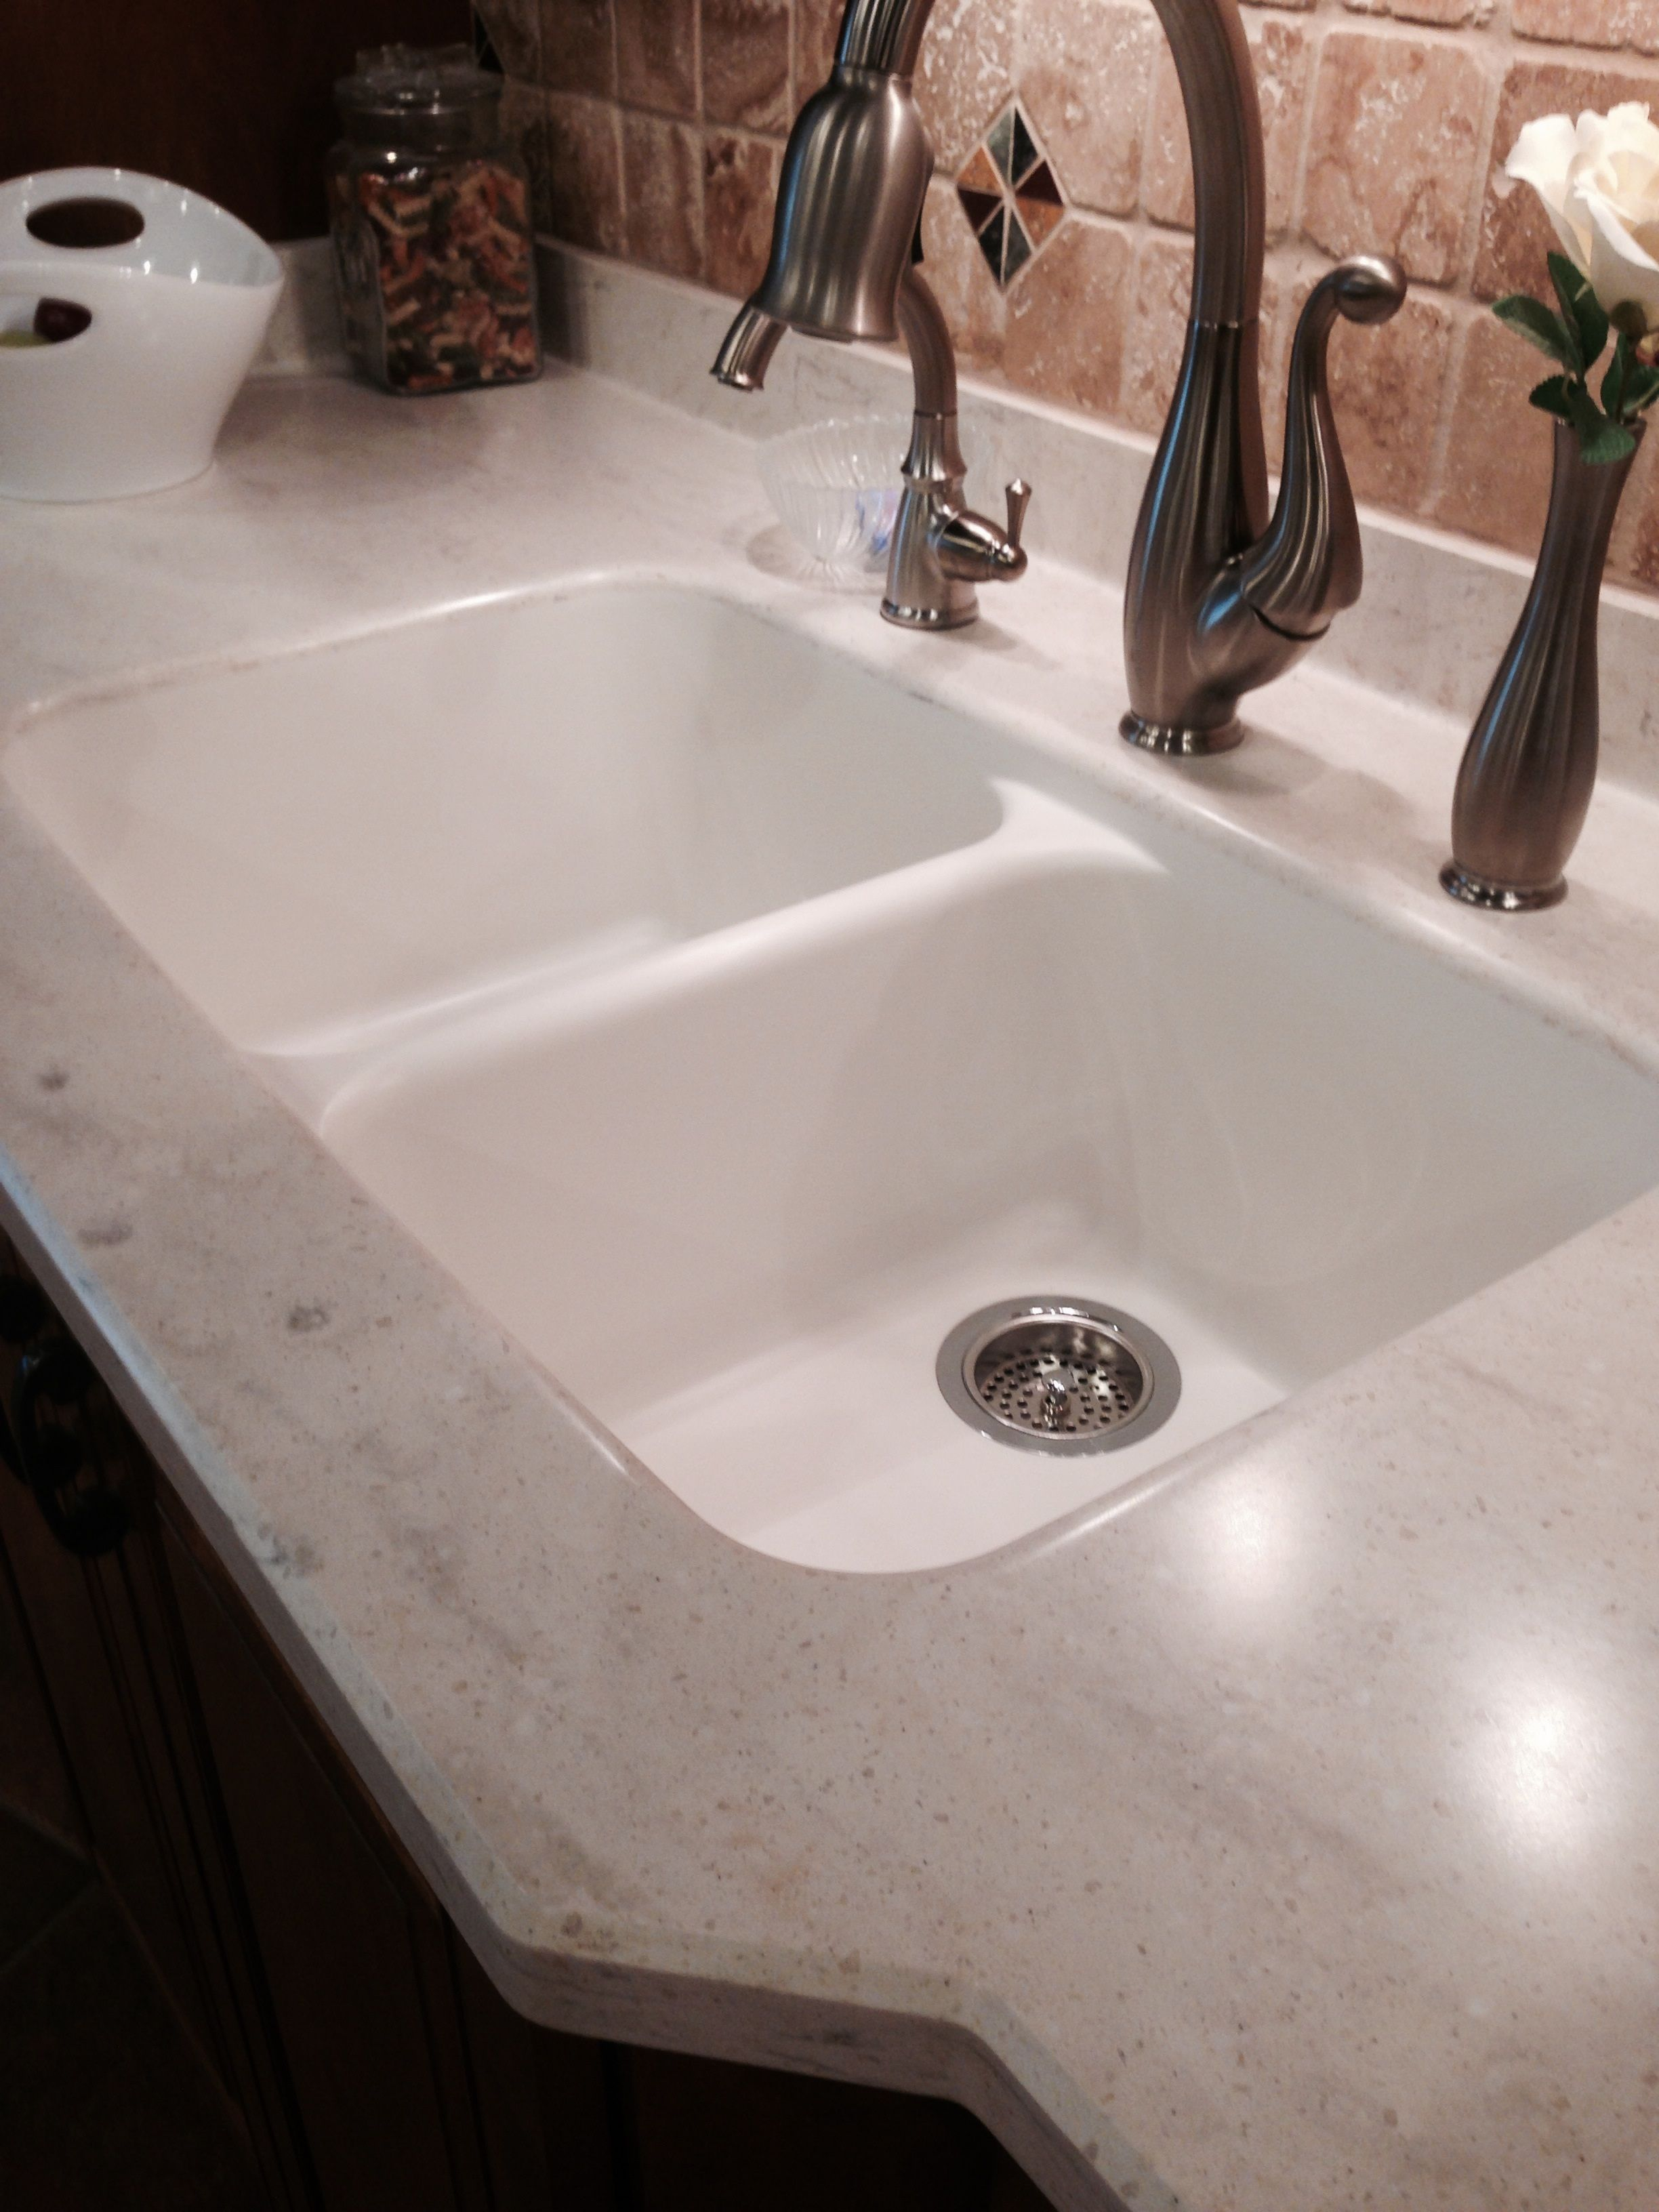 Intregal equal double bown sink coved back